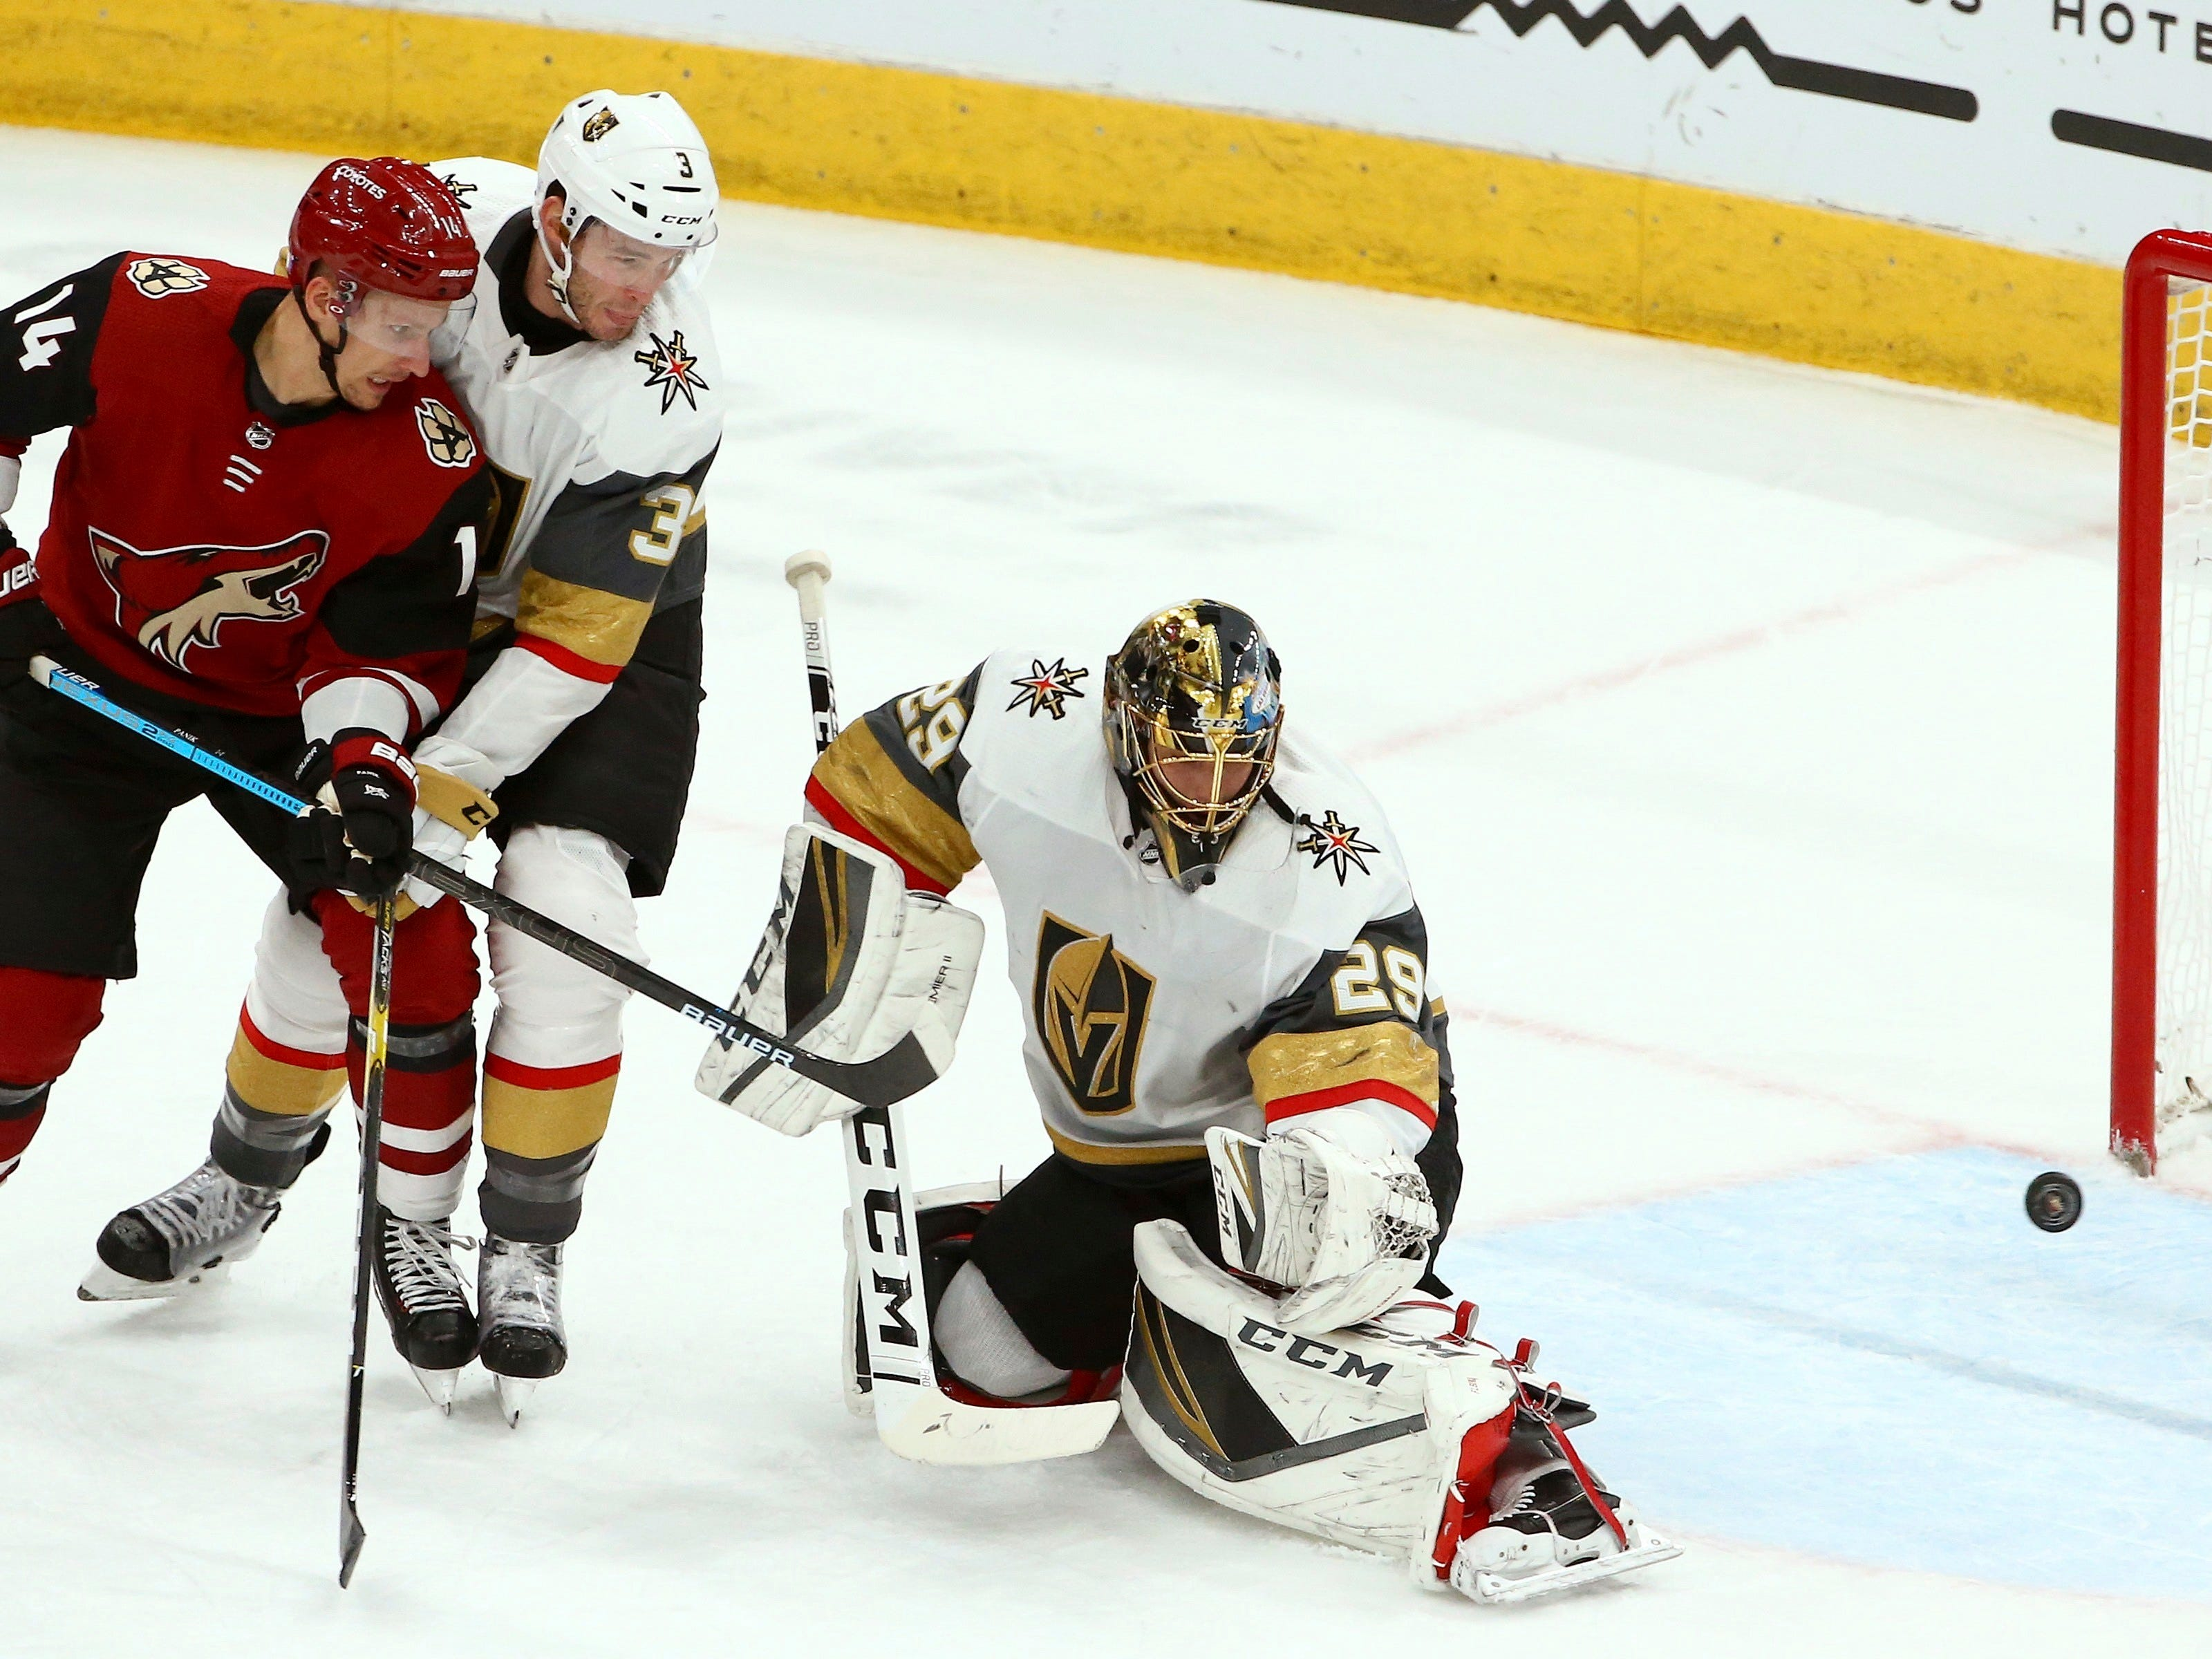 Golden Knights goaltender Marc-Andre Fleury (29) gives up a goal to Coyotes forward Derek Stepan during the first period of a game Nov. 21 at Gila River Arena